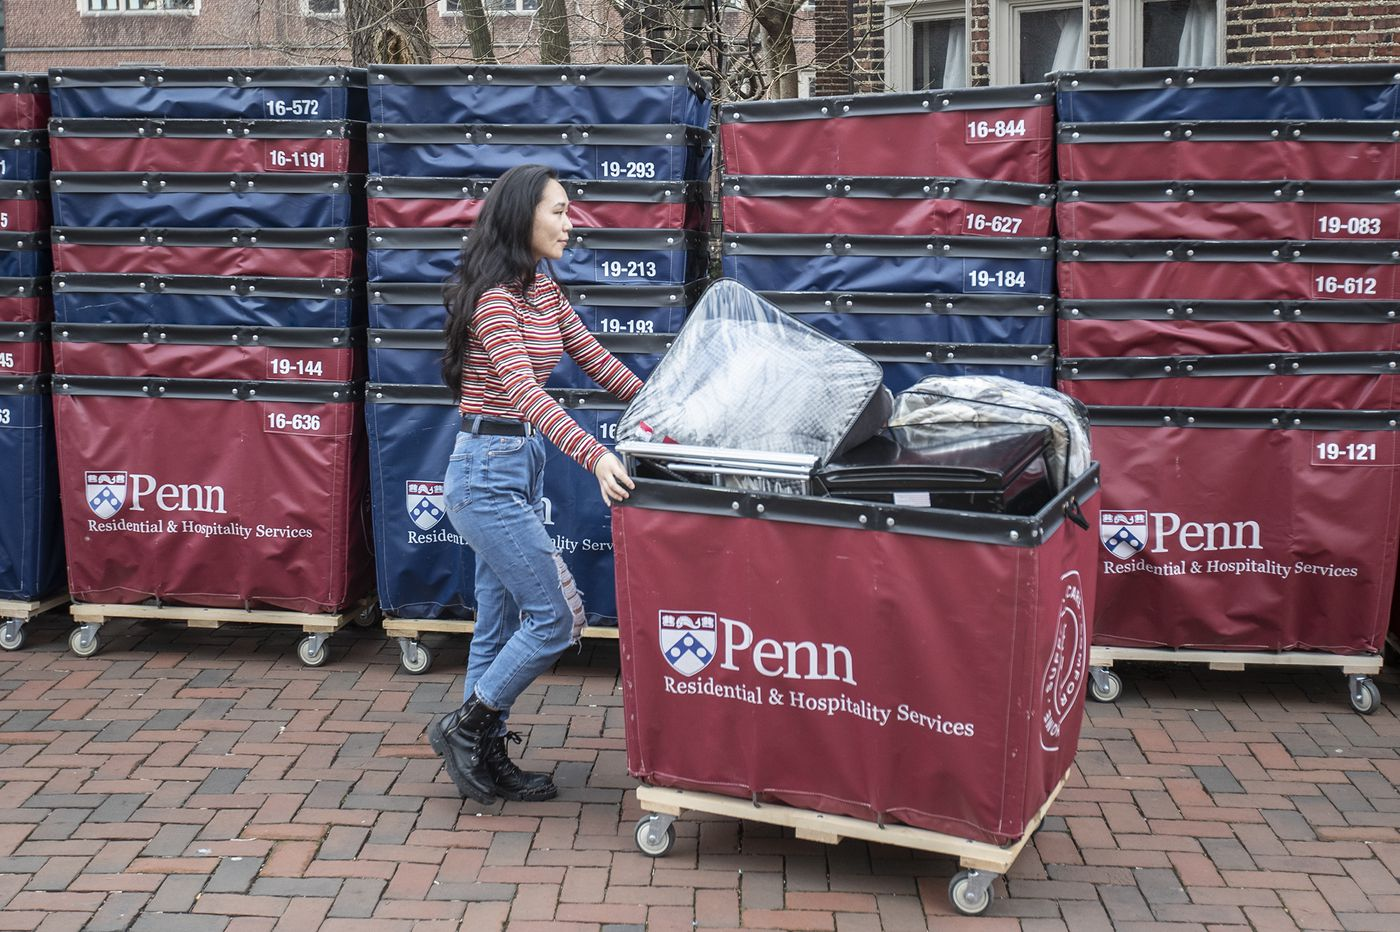 Penn 'left us stranded on the streets': Vulnerable students are desperate as coronavirus shuts down Philly colleges